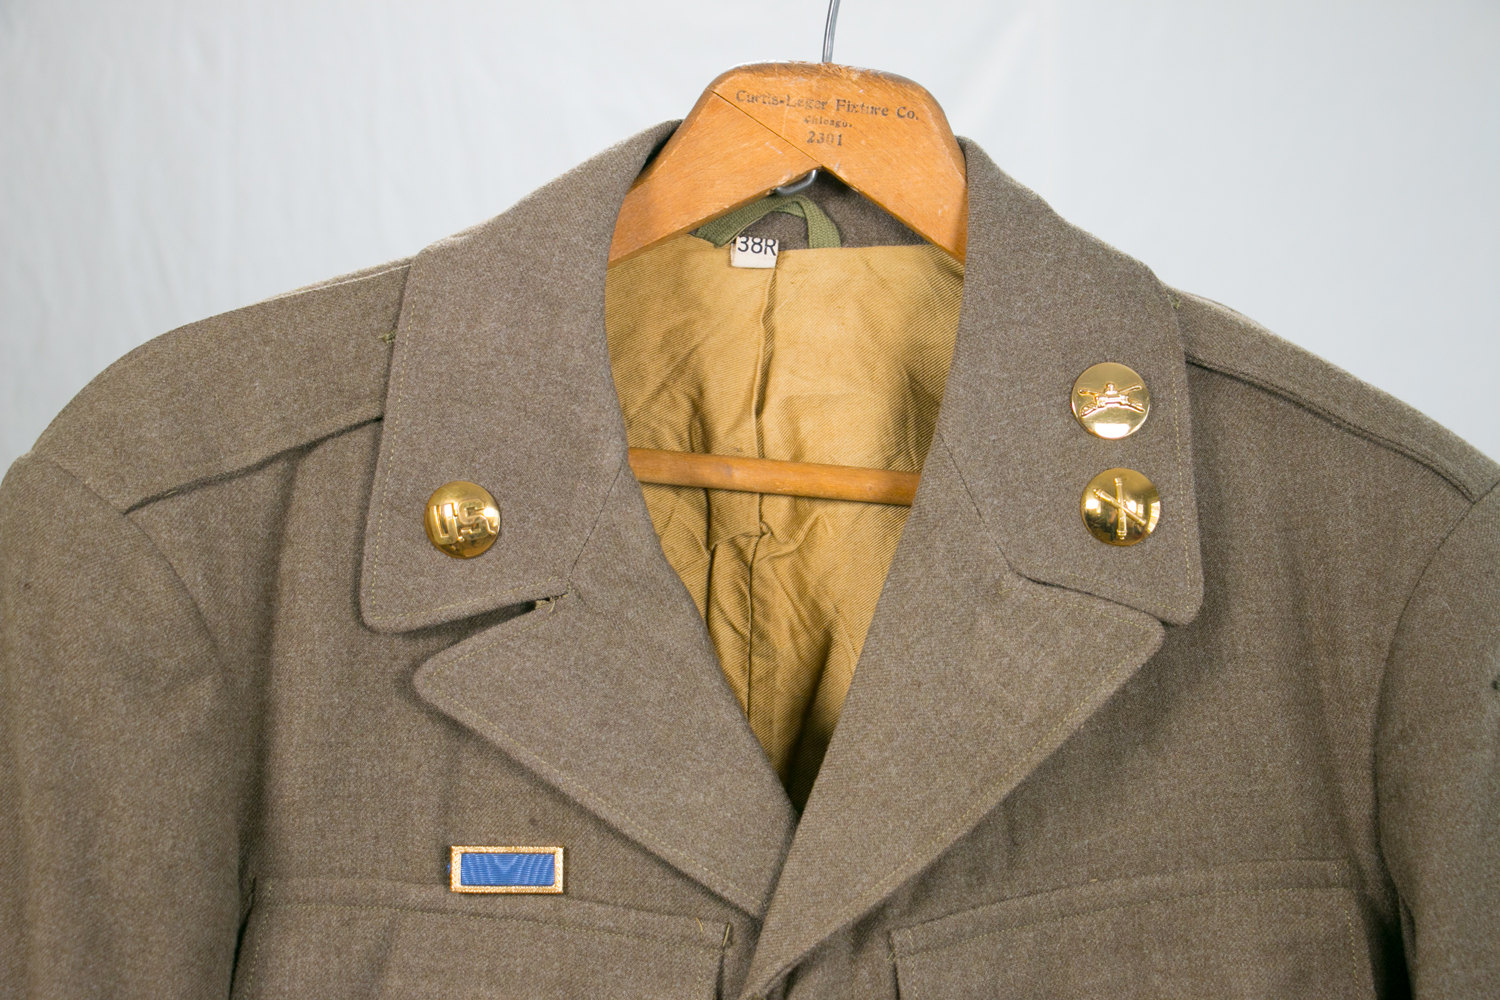 WWII 40th Infantry Airborne Corps Army Jacket - 38R Wool - Amazingly Preserved - Hipster Military Coat